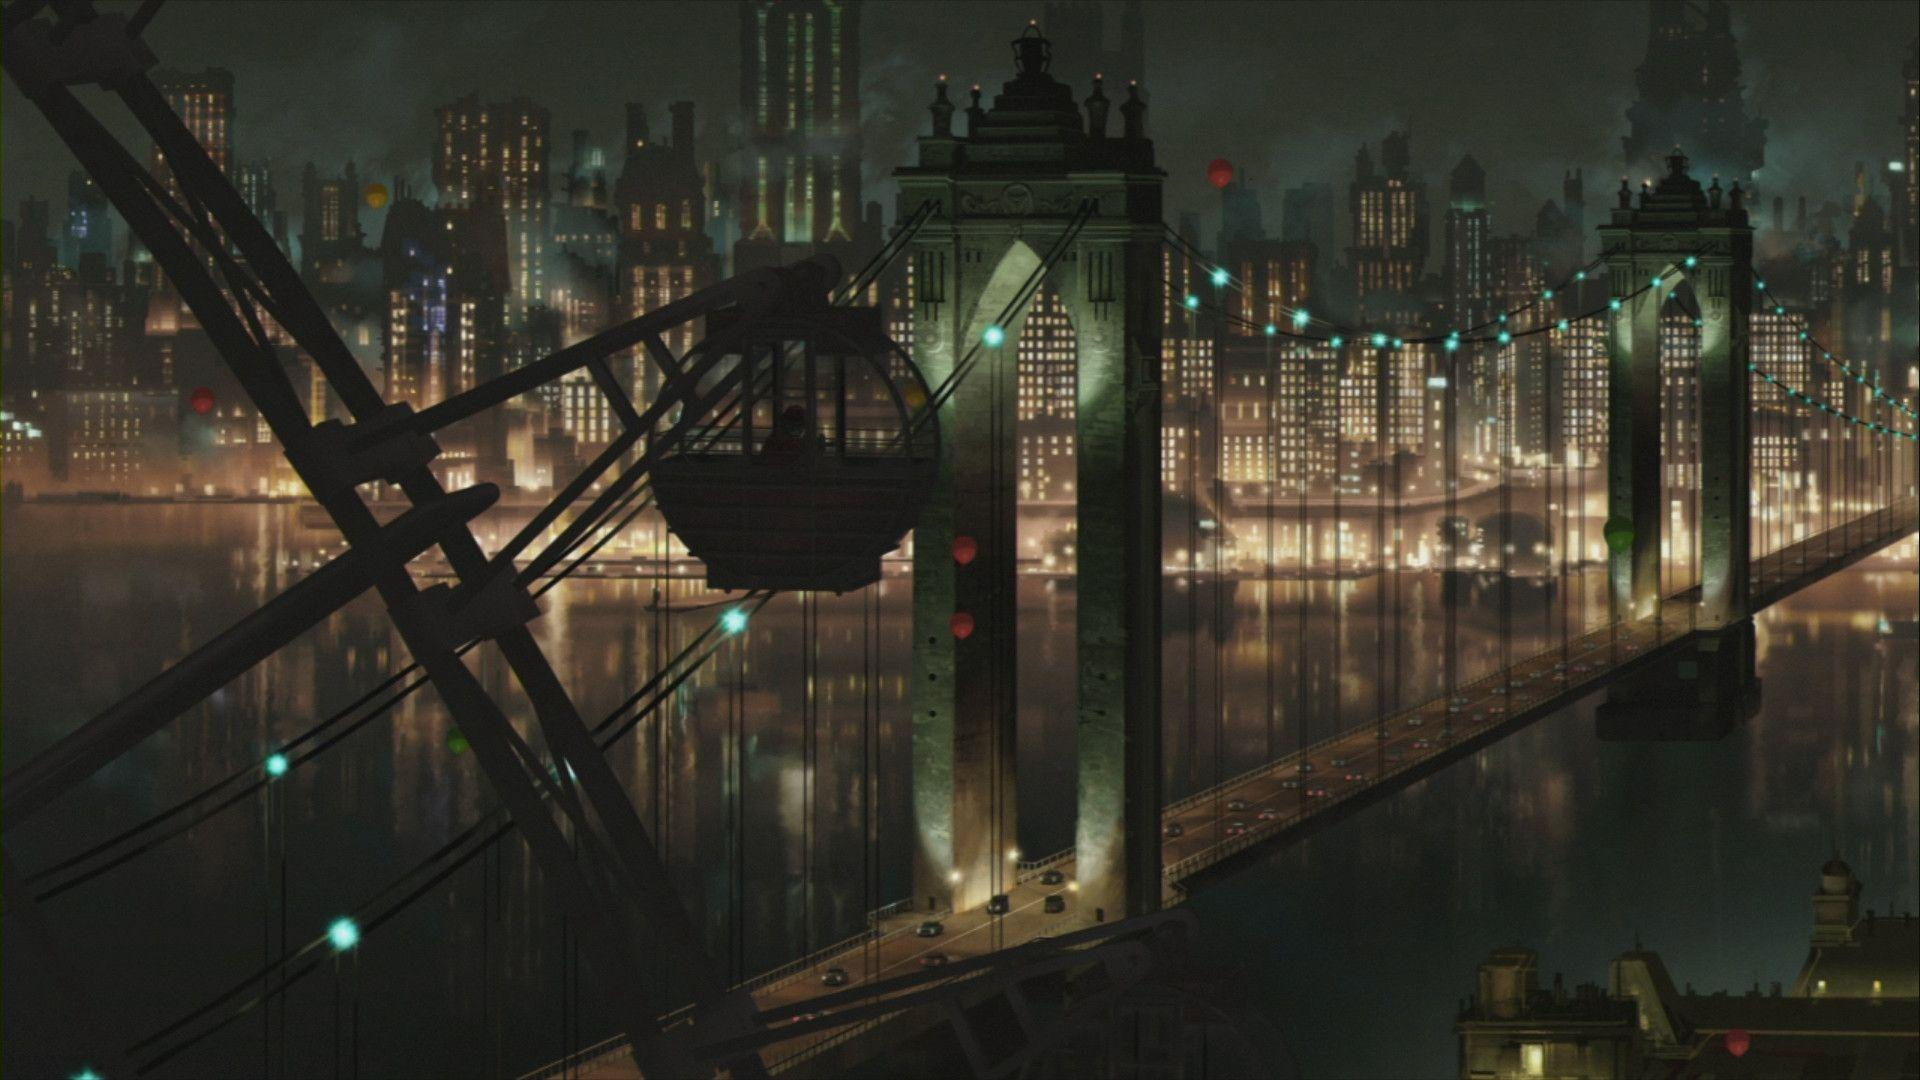 Gotham City Of Batman 27048 Hi-Resolution | Best Free JPG